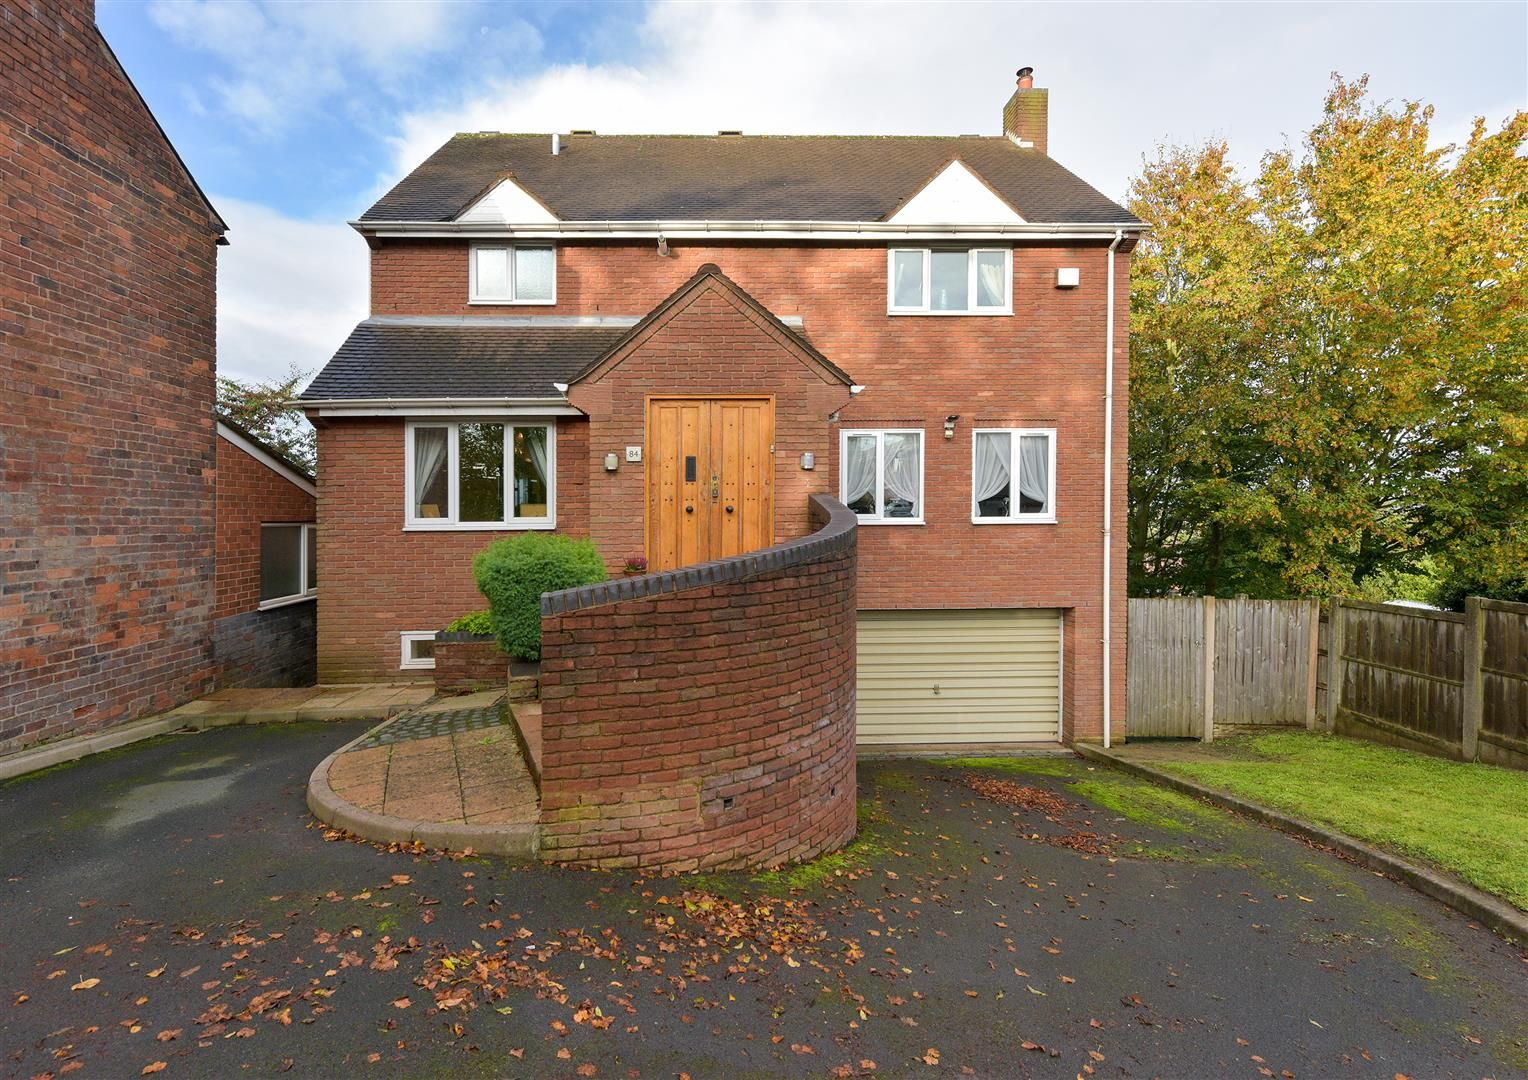 3 bed detached for sale 26